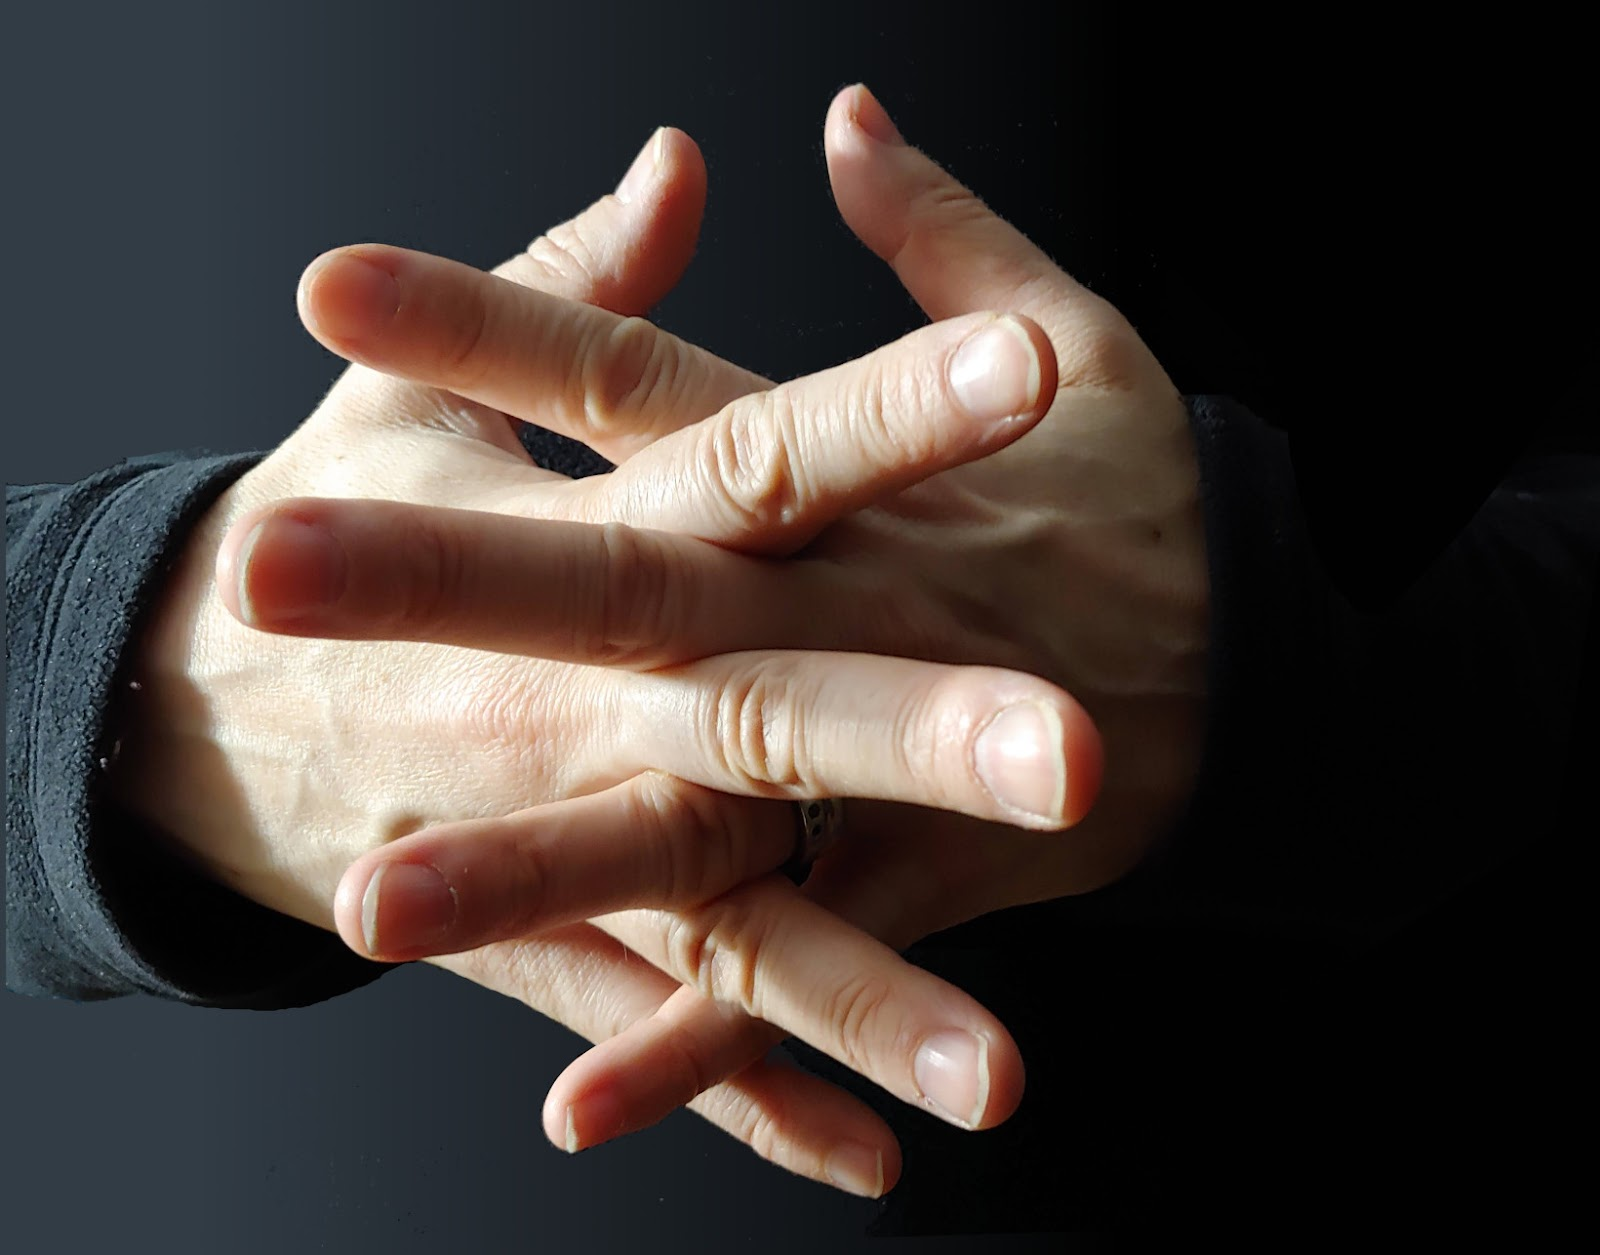 photo of hands with interleaved fingers